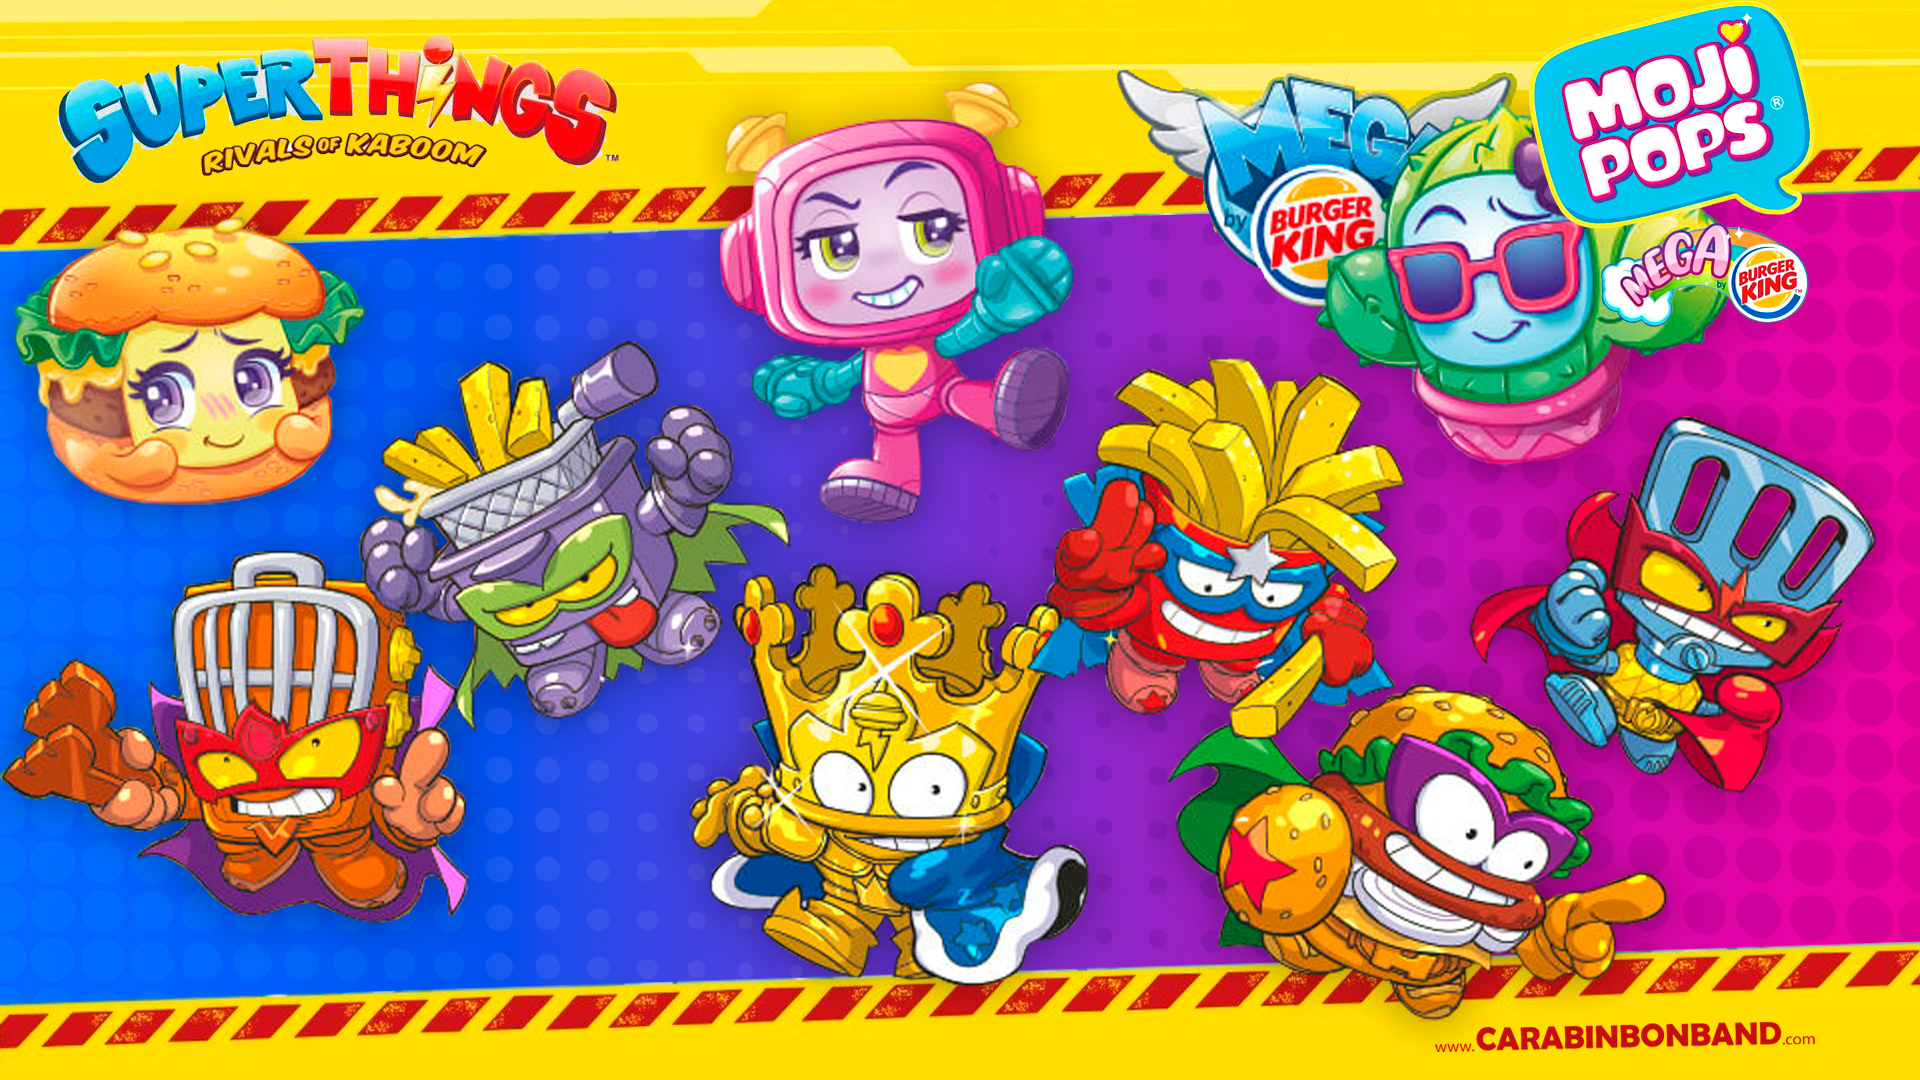 SUPERTHINGS and MOJIPOPS MEGA - SUPERZINGS BURGER KING series 2 - by CARA BIN BON BAND